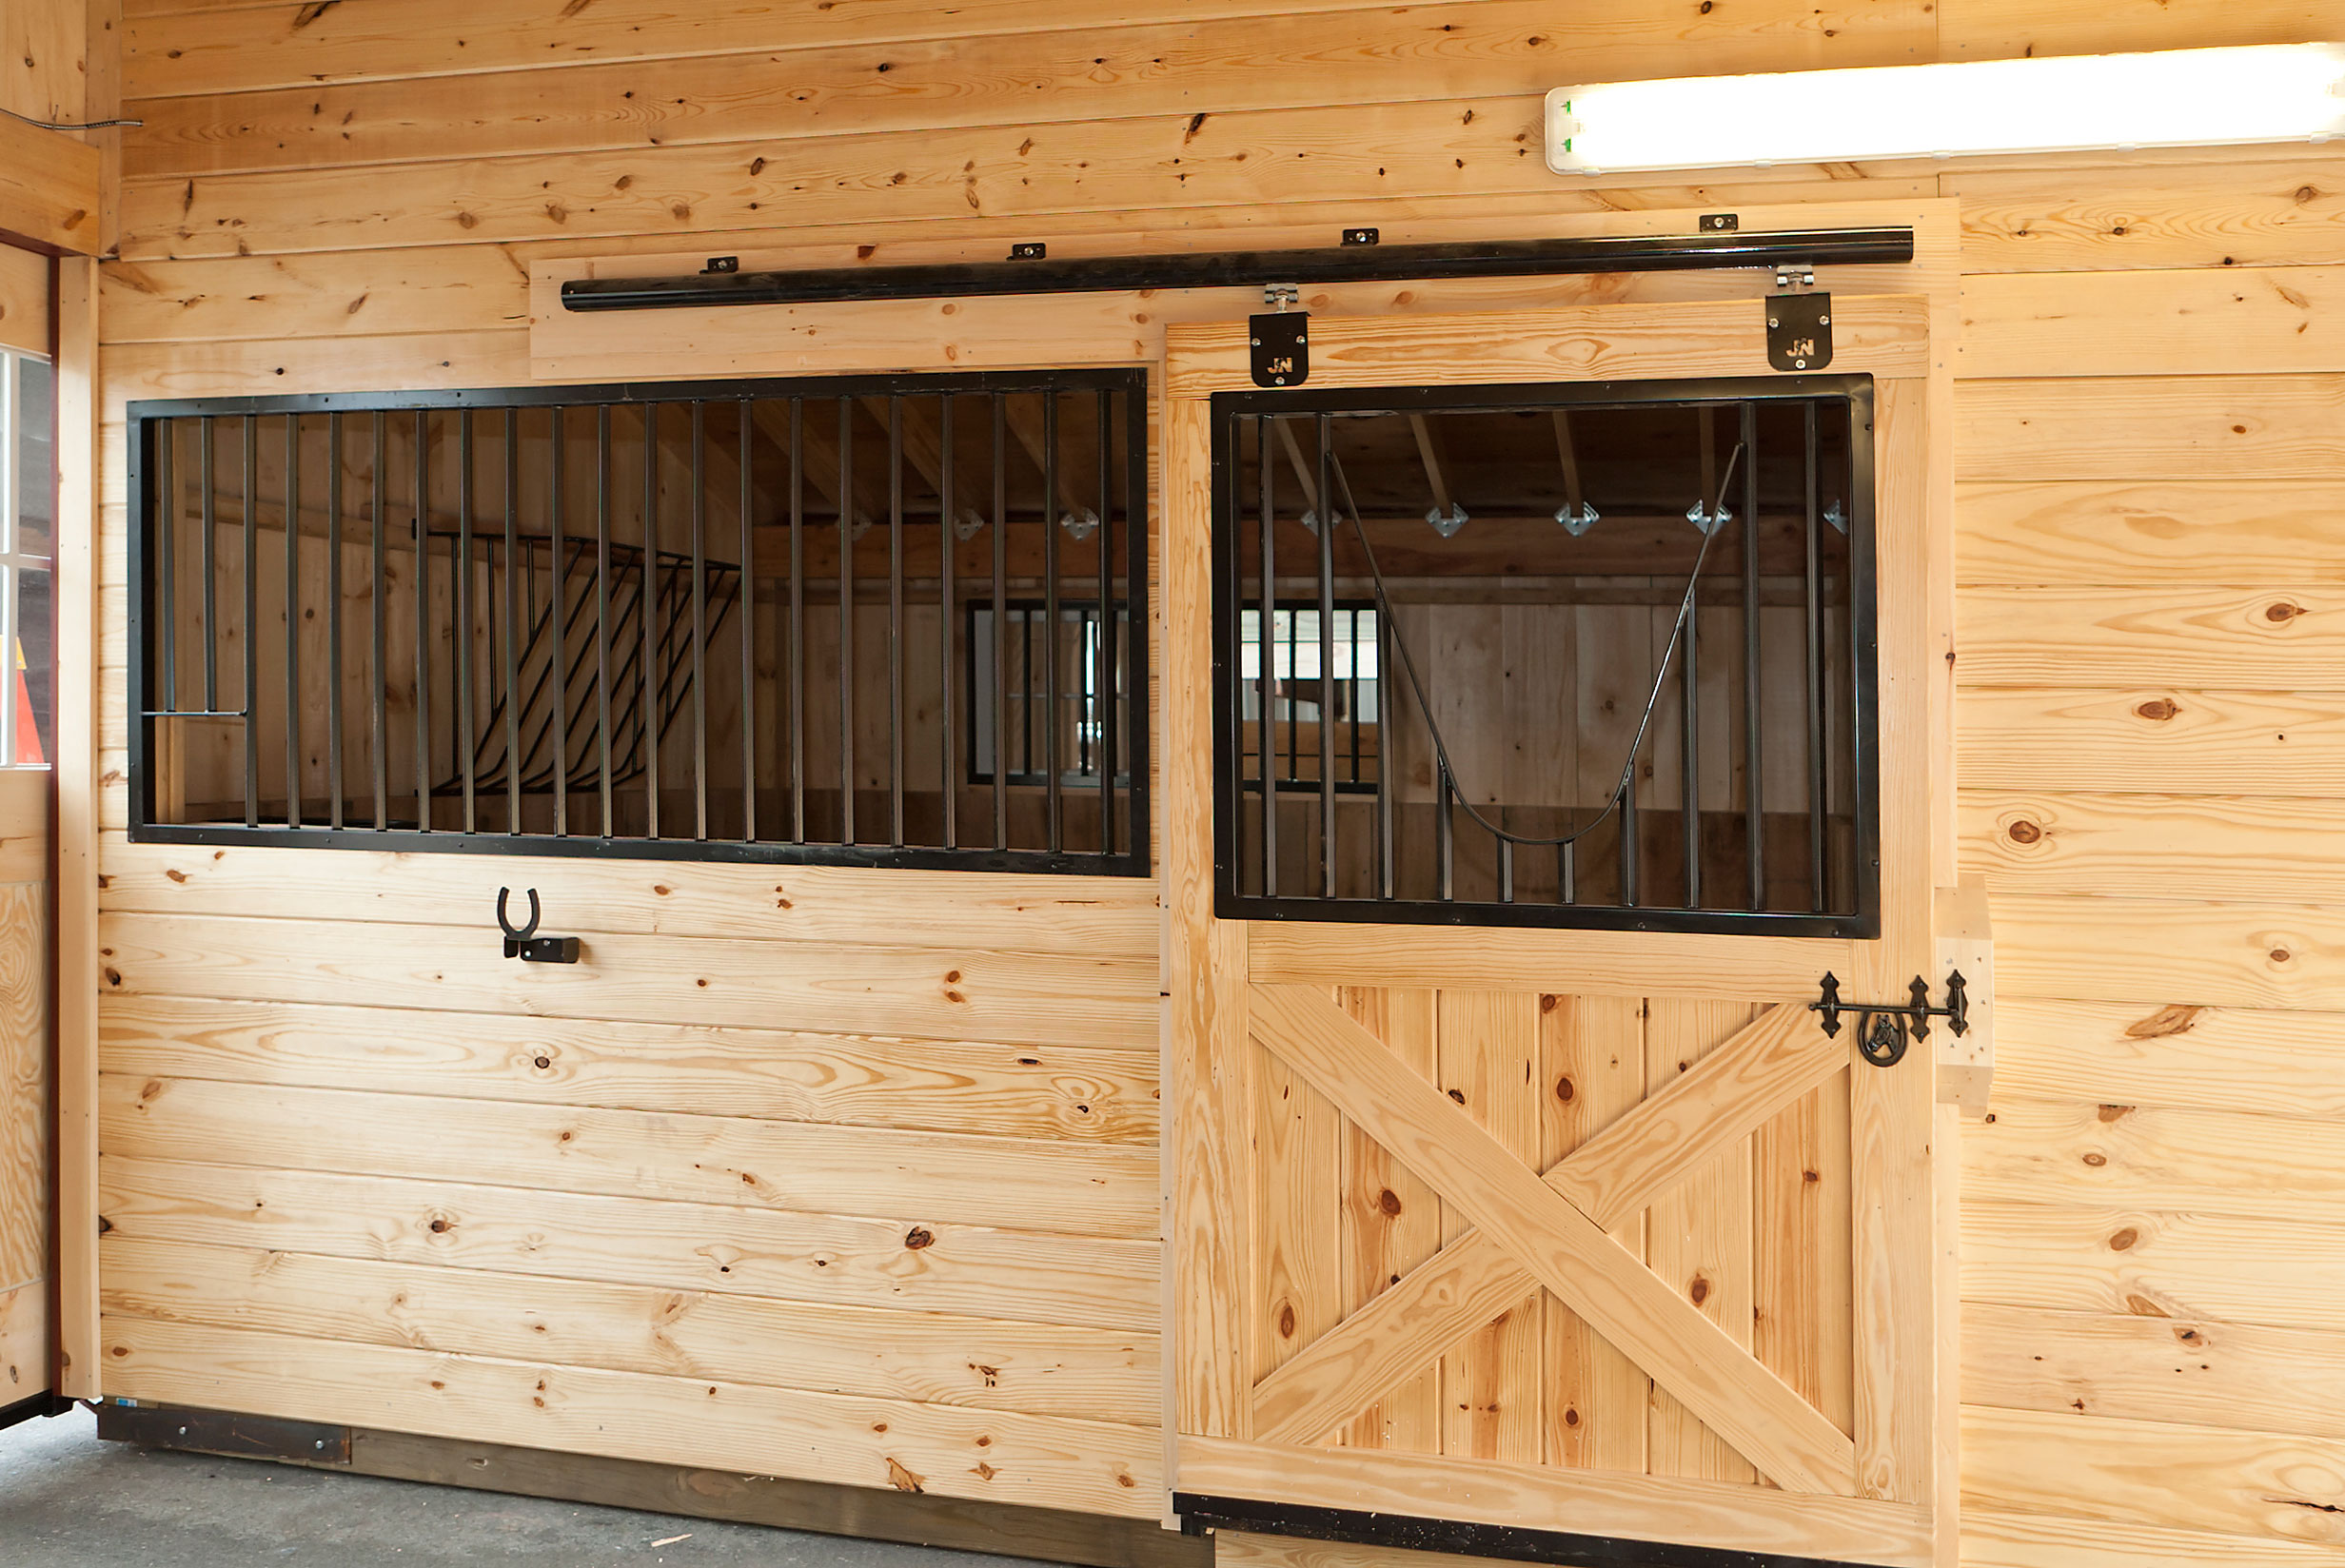 builders crafted plans creations sheds by hand toy history mennonite pole built raising an hollow own designs build how horse barns amish rent homes cat home wild decor indiana barn to wooden stables